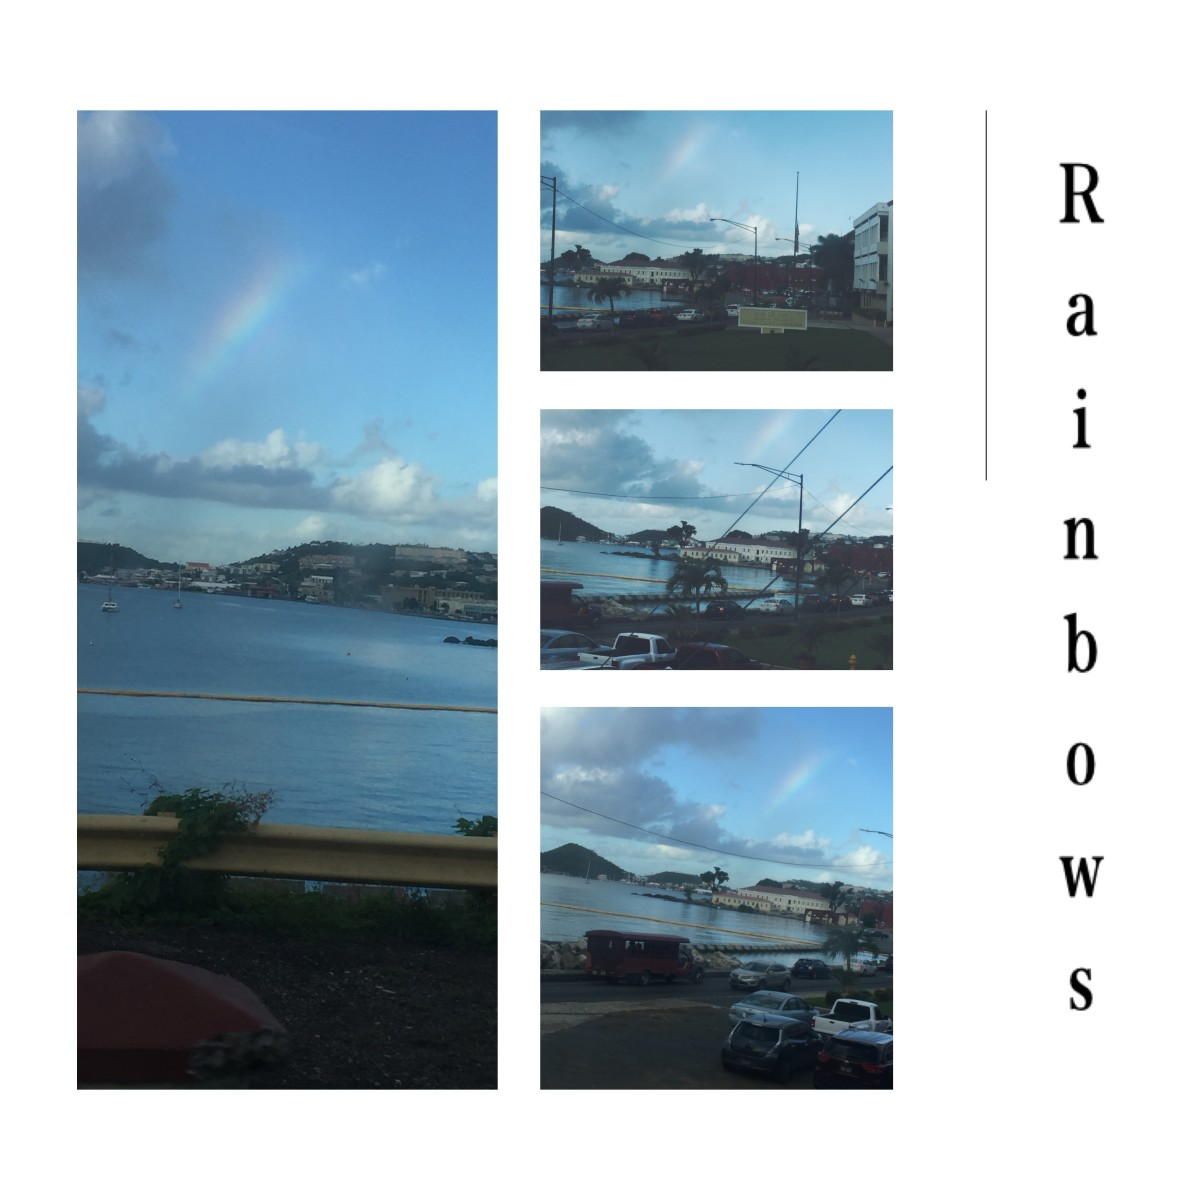 December 11, 2018 @ 7:59am. Captured rainbow driving on De Beltjen Rd. Short cut hill behind the court house. over lookinf the waterfront.